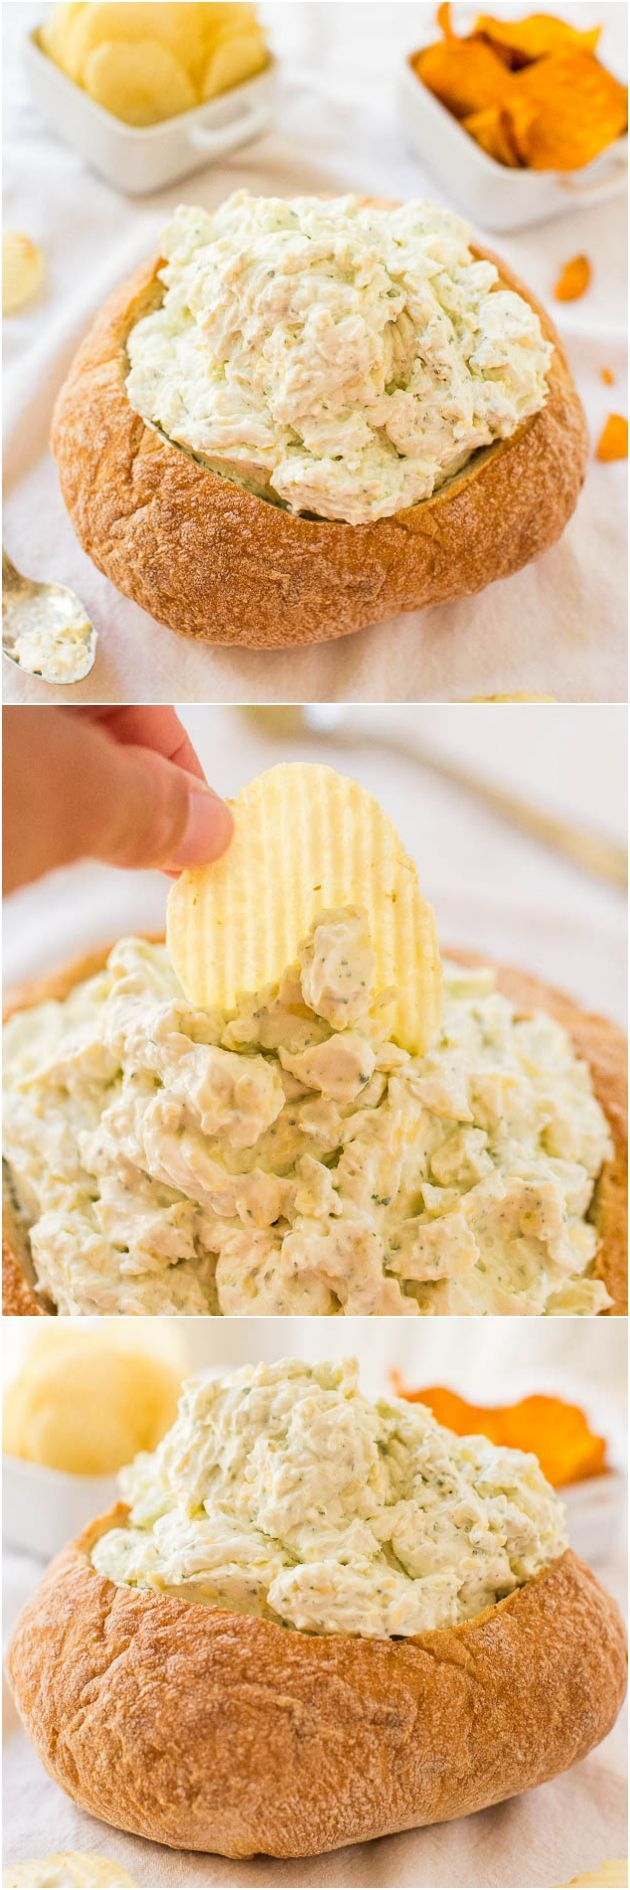 Creamy Ranch & Cheese Bread Bowl Dip - A no-bake, easy dip that's packed with bold flavor! A perfect party dip & you get to eat the bowl!